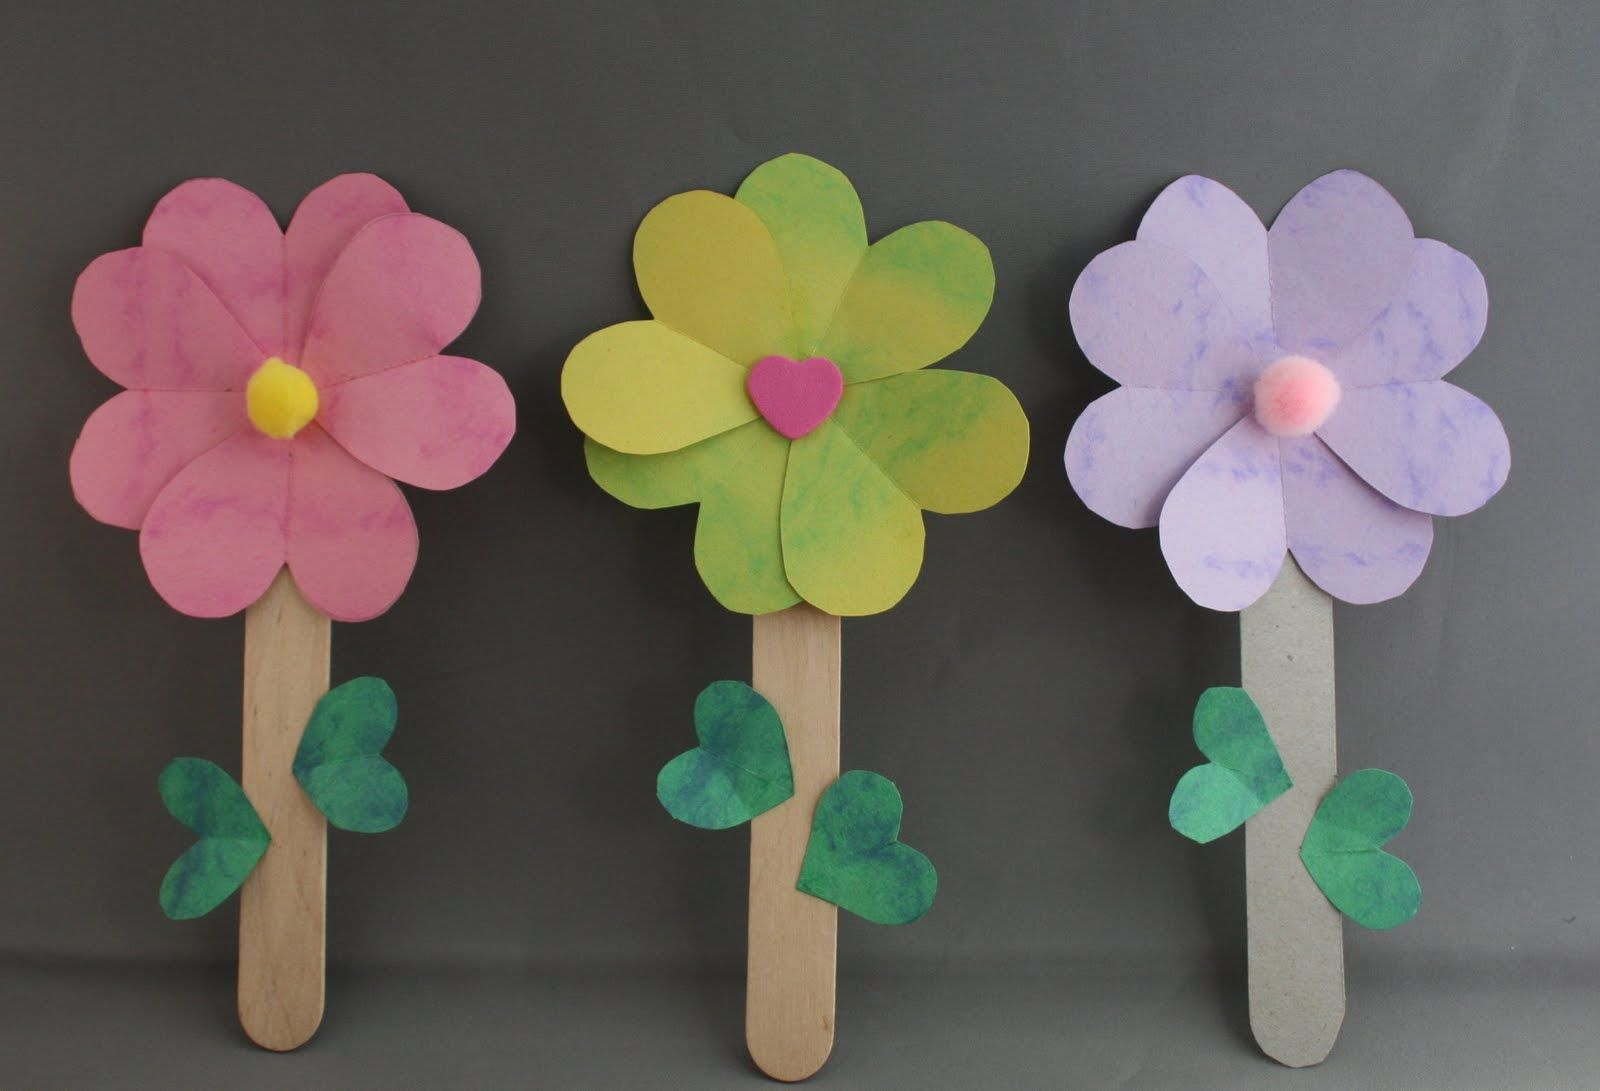 Enjoyed One To Many Popsicle Sticks This Summer Put Them Good Use In Fun Craft For Little Ones